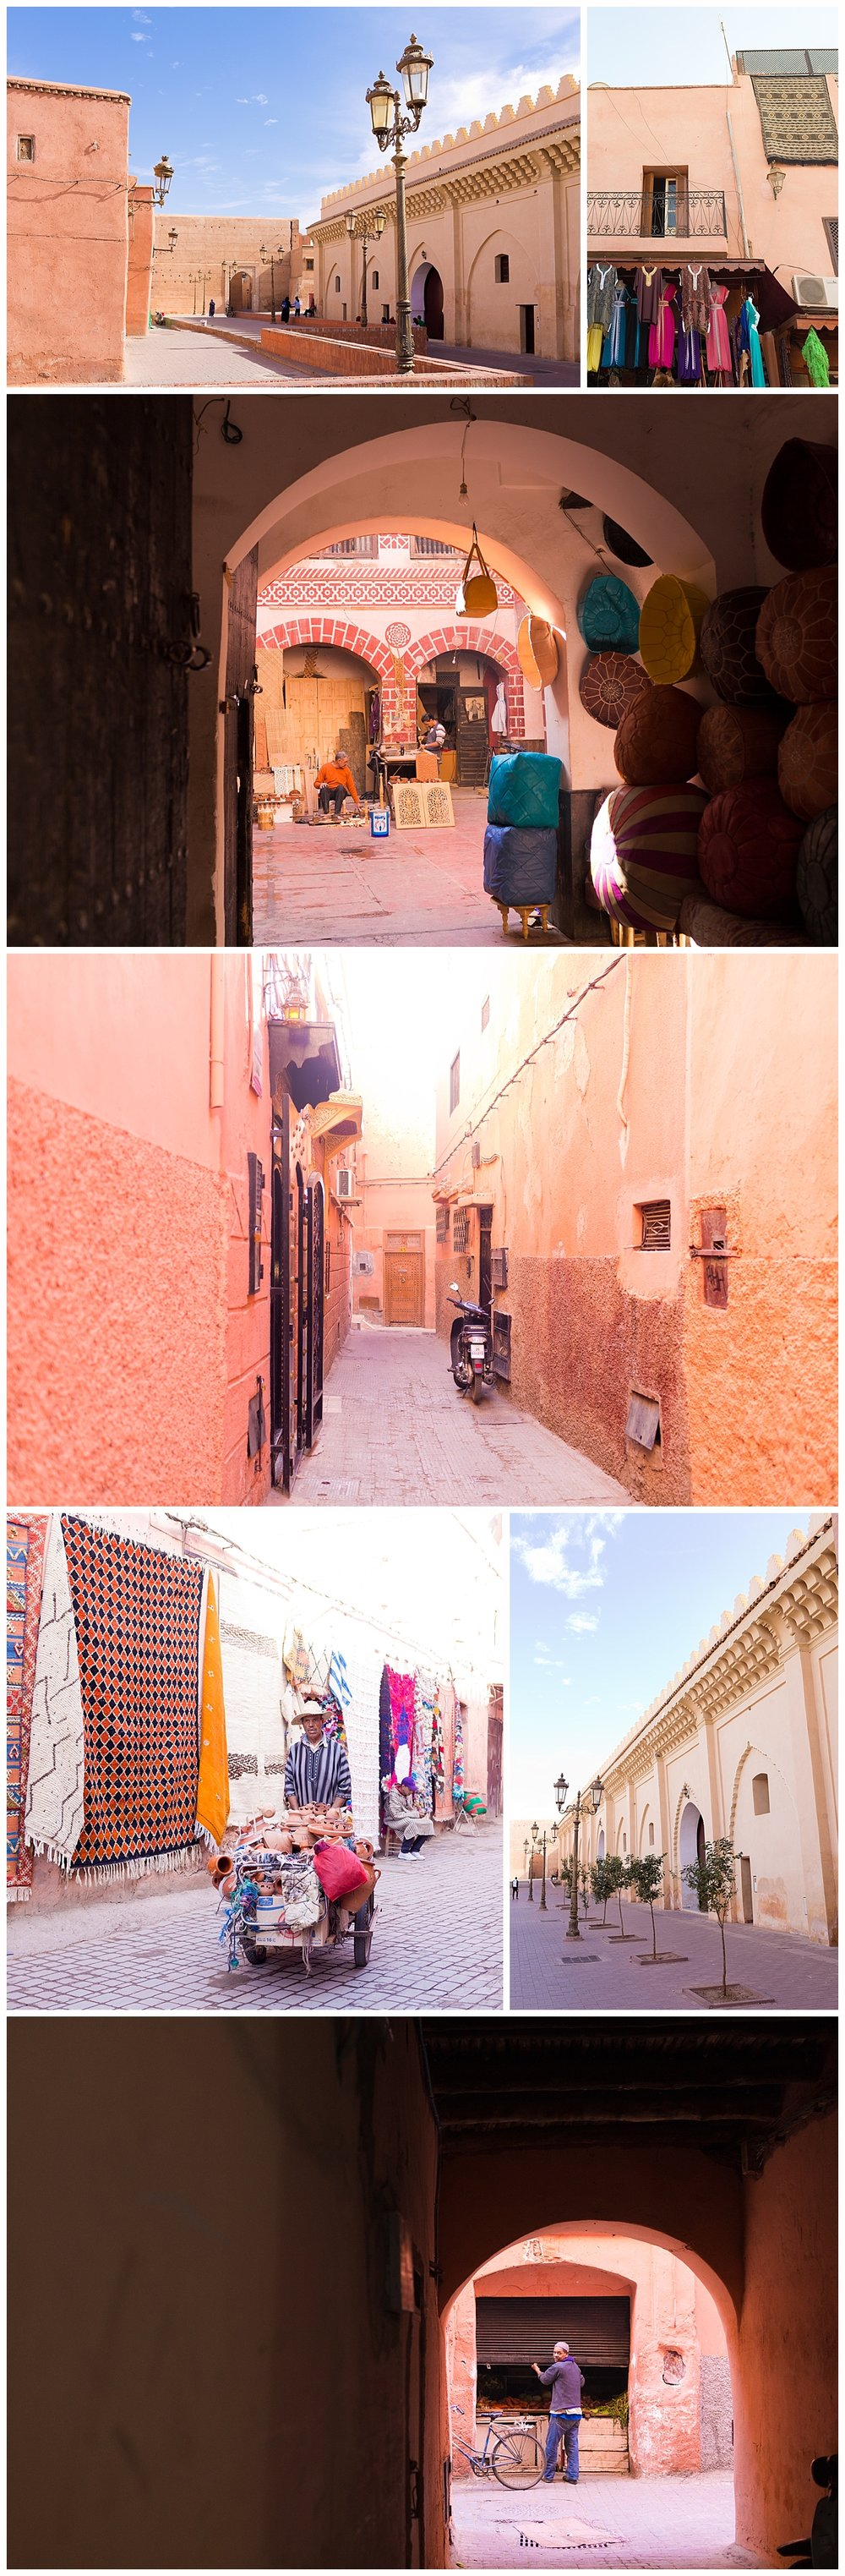 scenes from the Marrakech medina